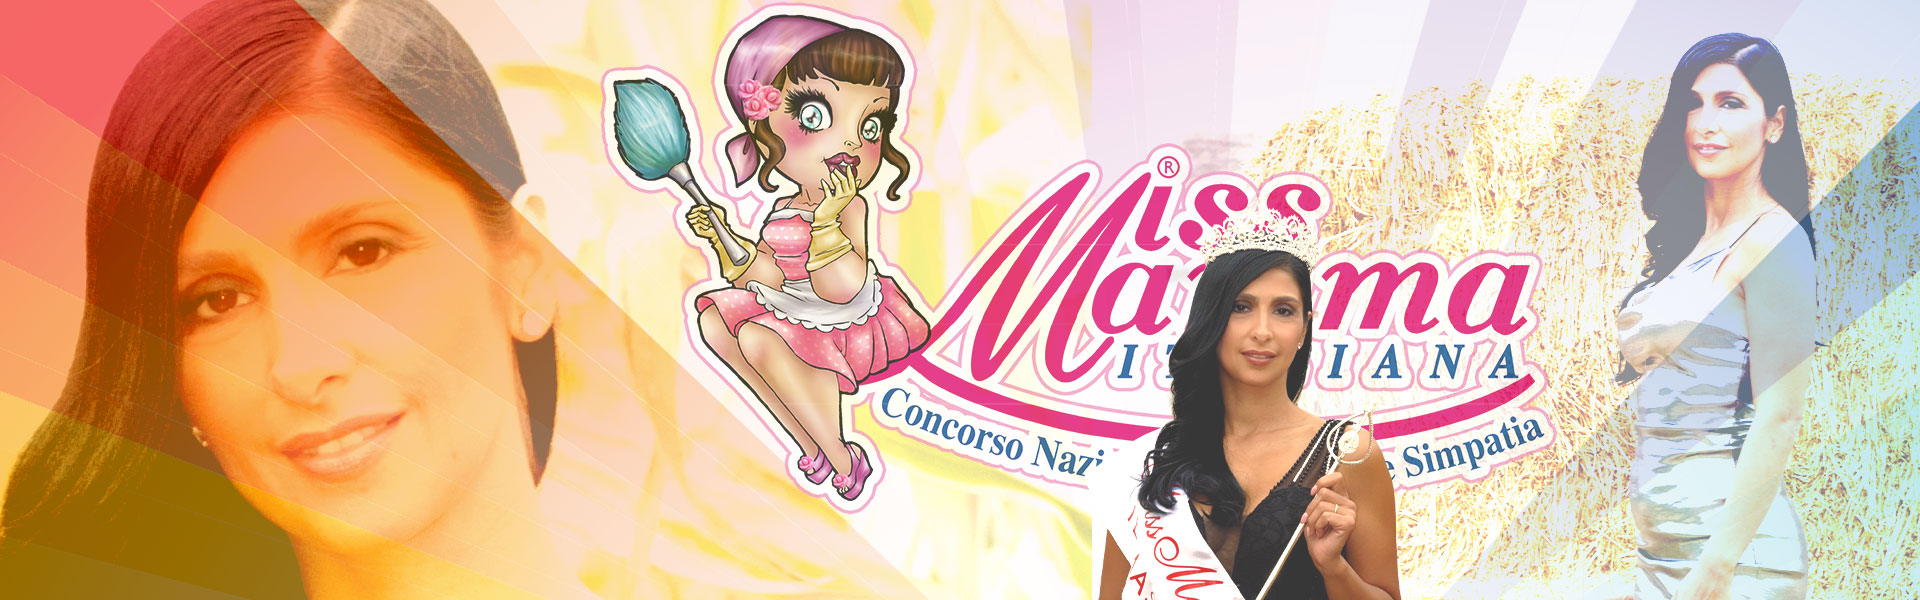 Miss-Mamma-Italiana-2020-Anastasia-Sole-banner-home